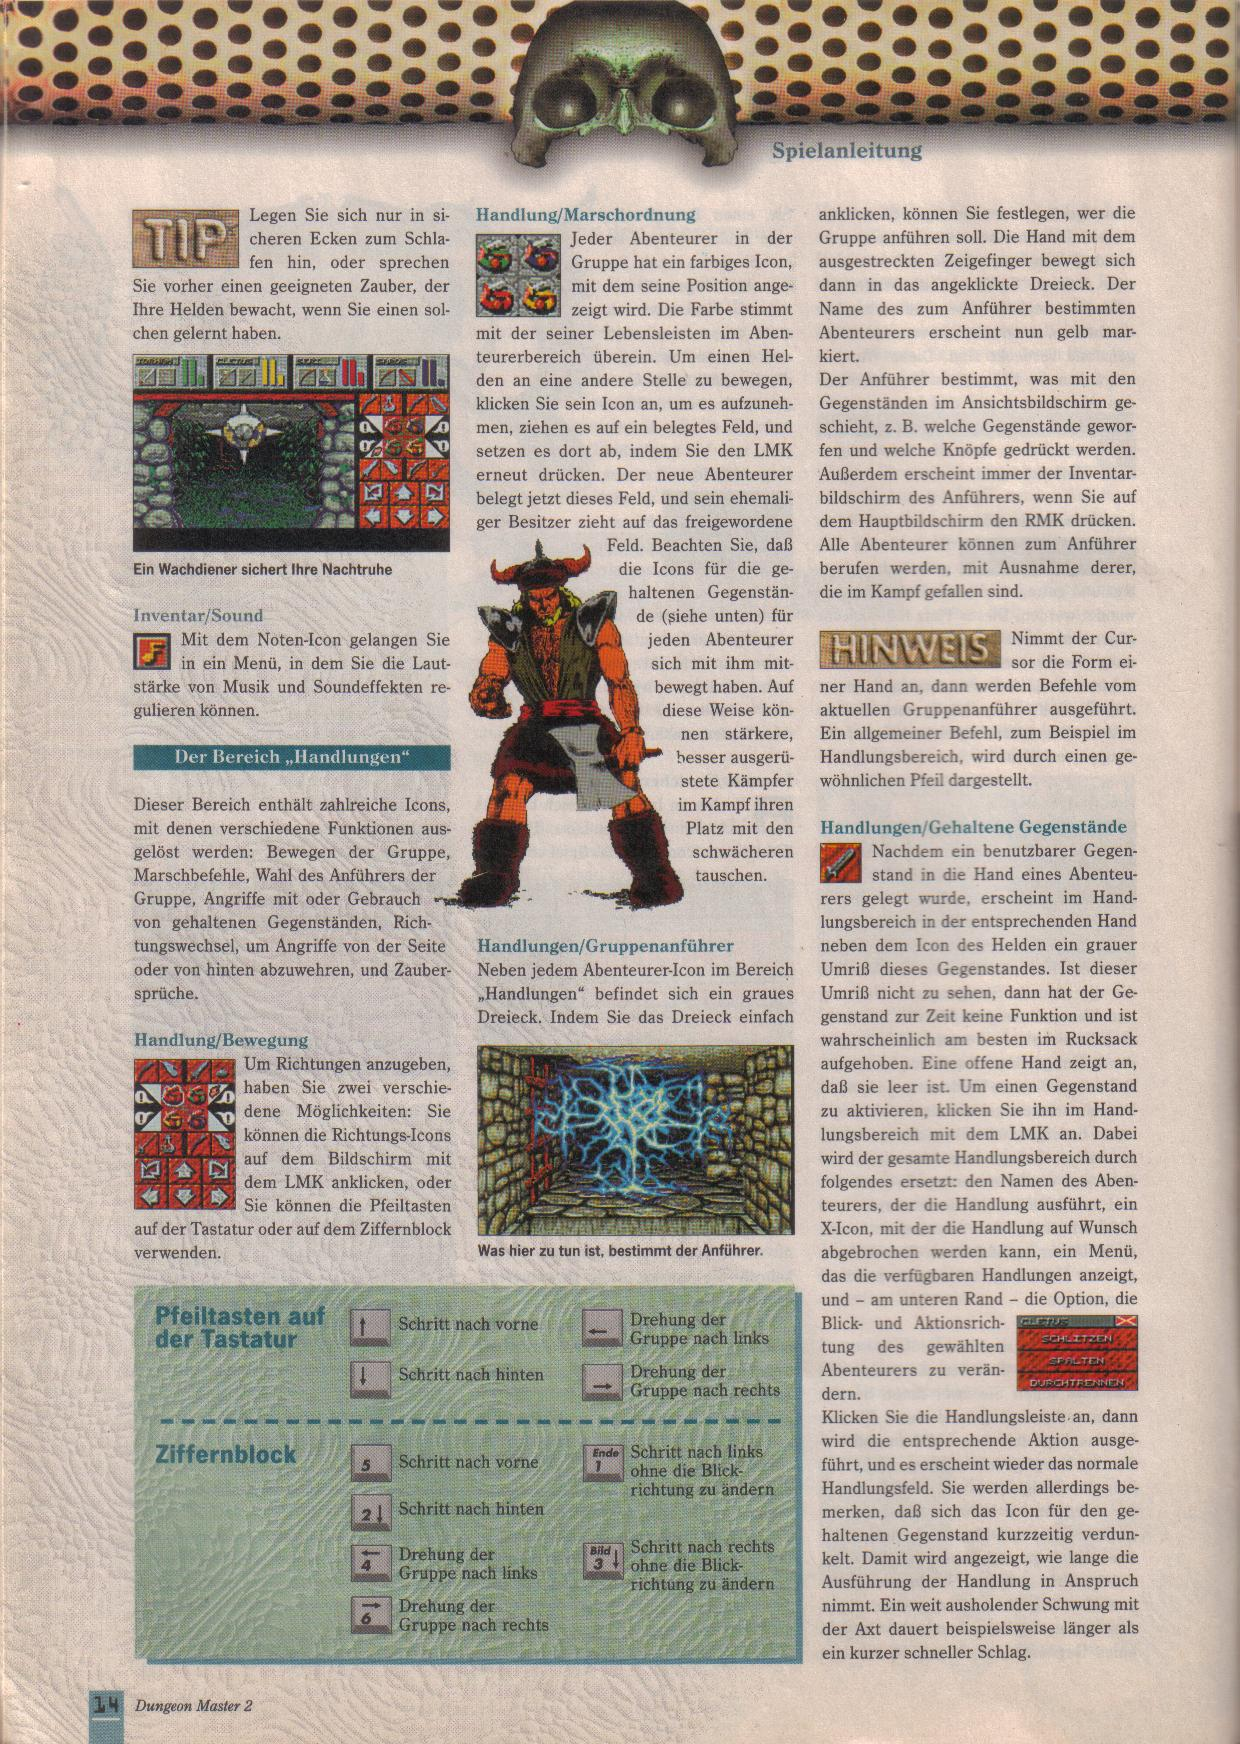 Dungeon Master II for PC (German, Best Seller Games) Page 14